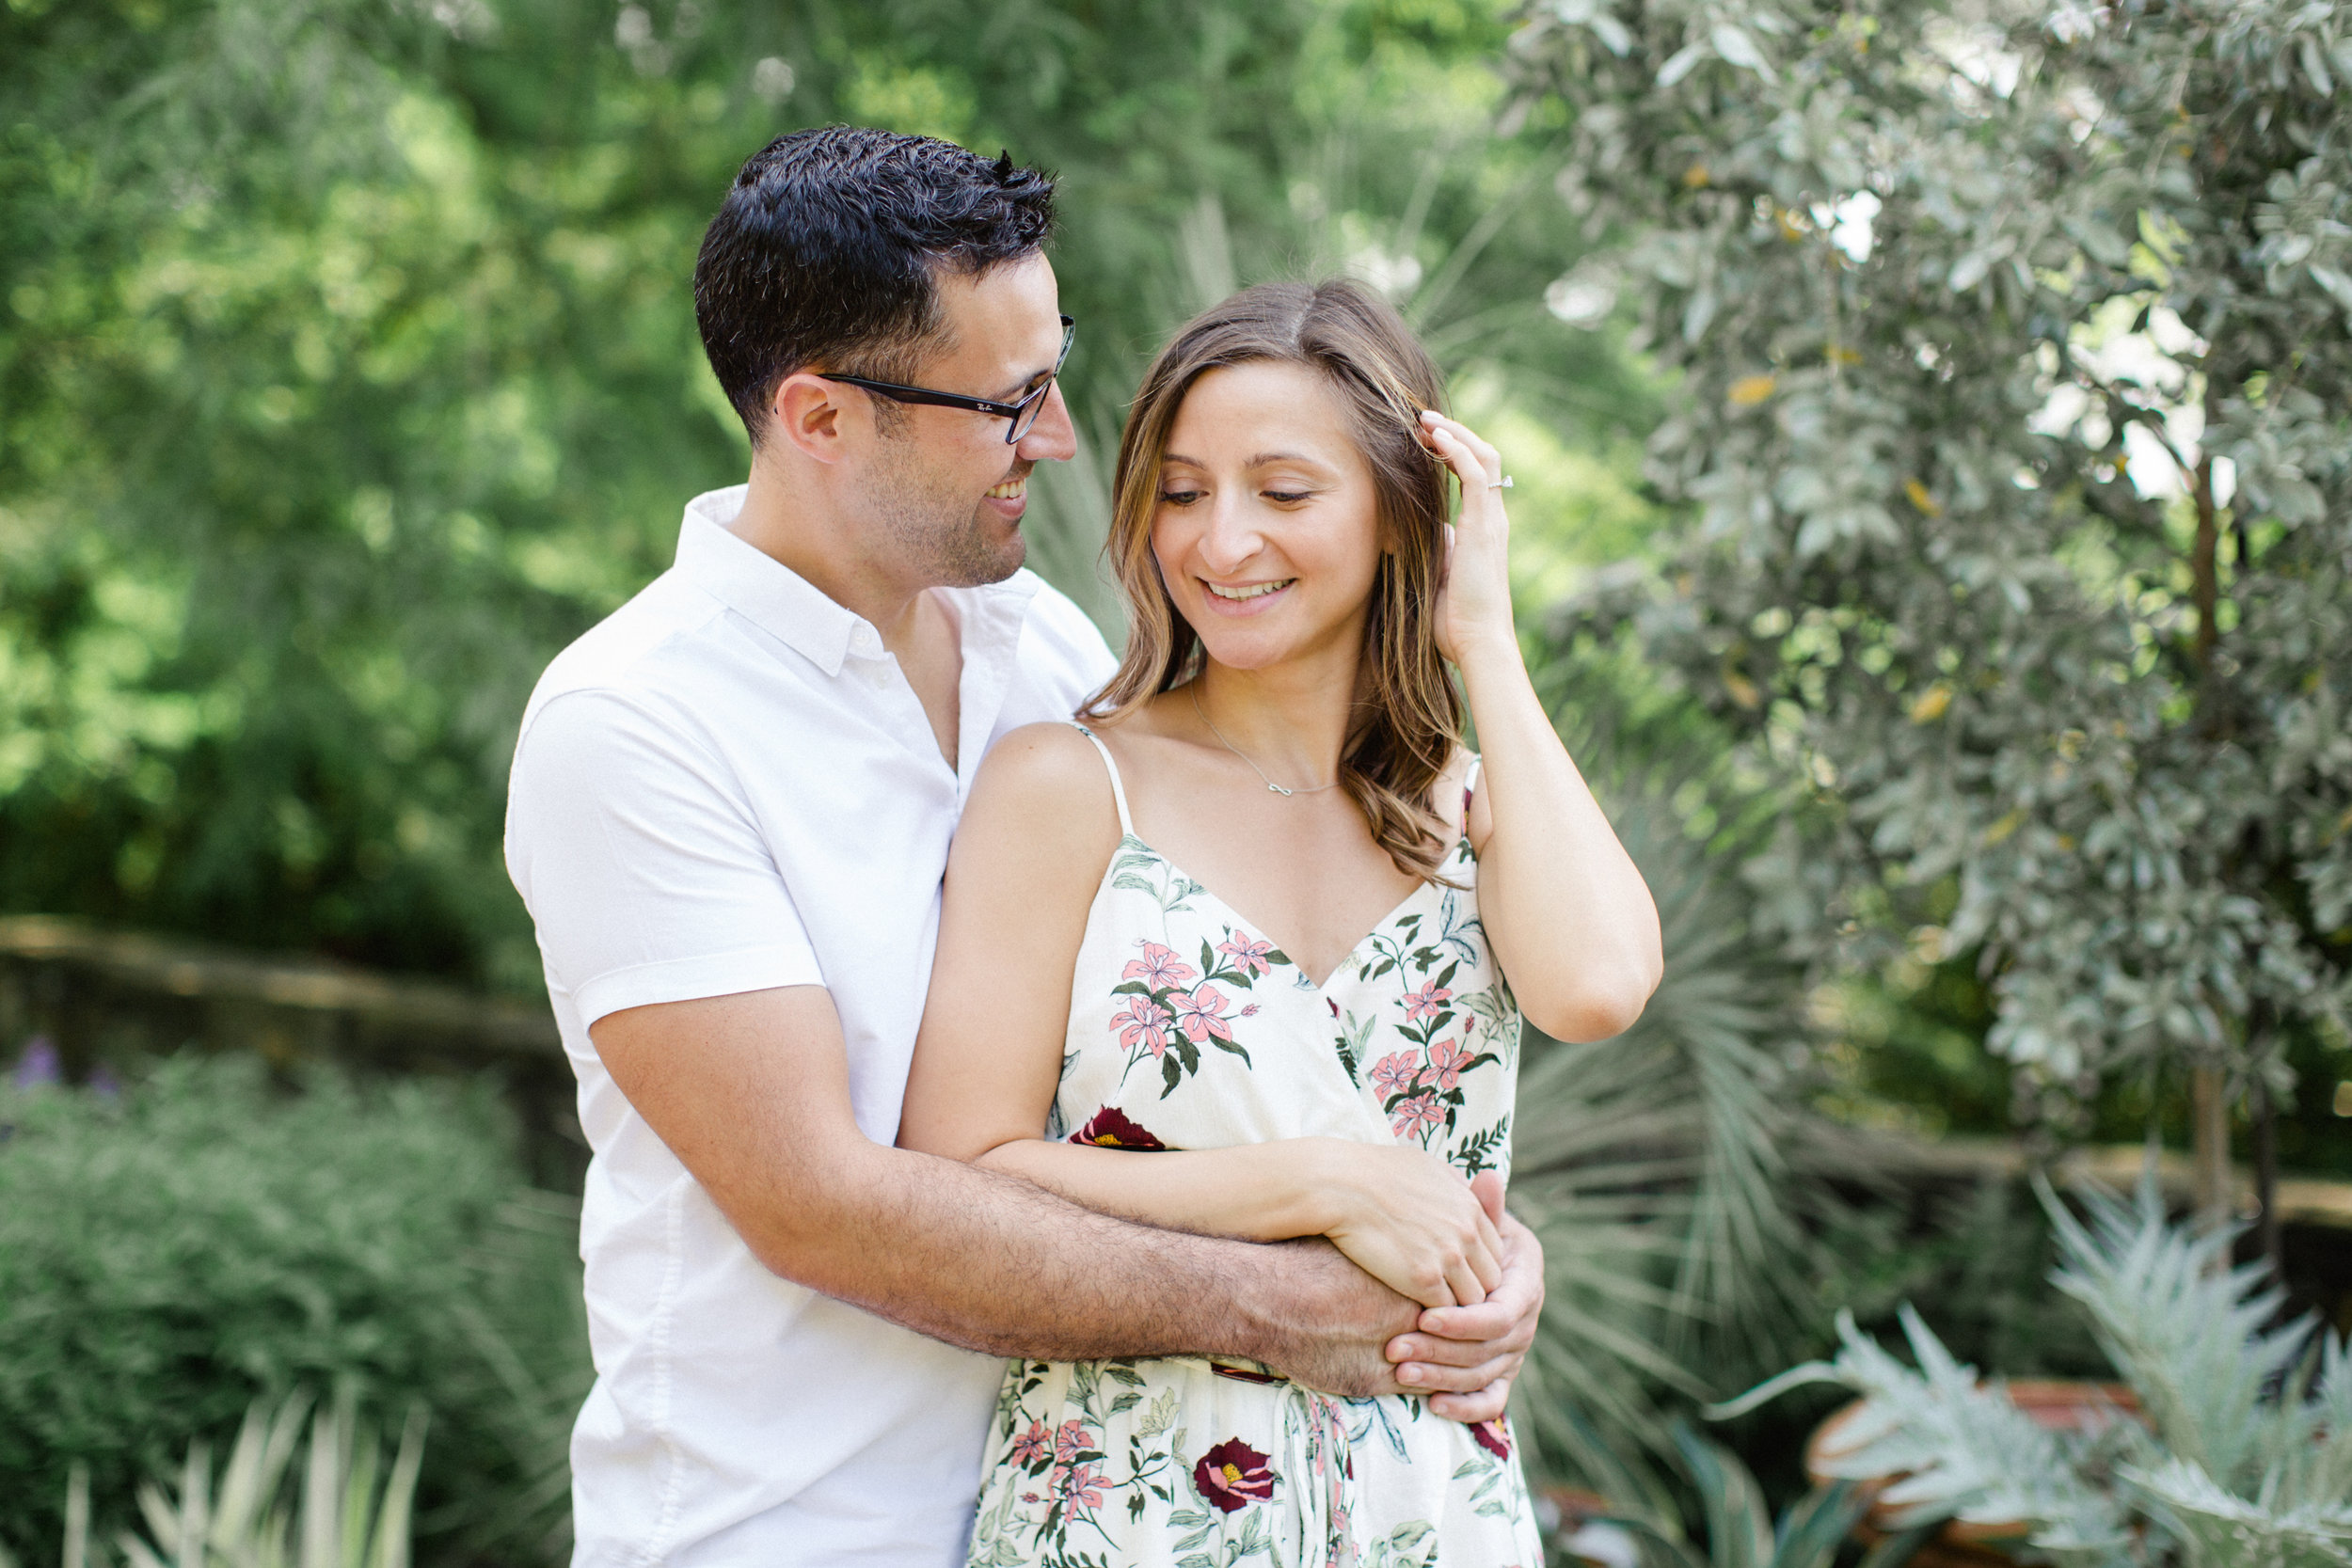 Longwood Gardens Engagement Session Photos_JDP-7.jpg